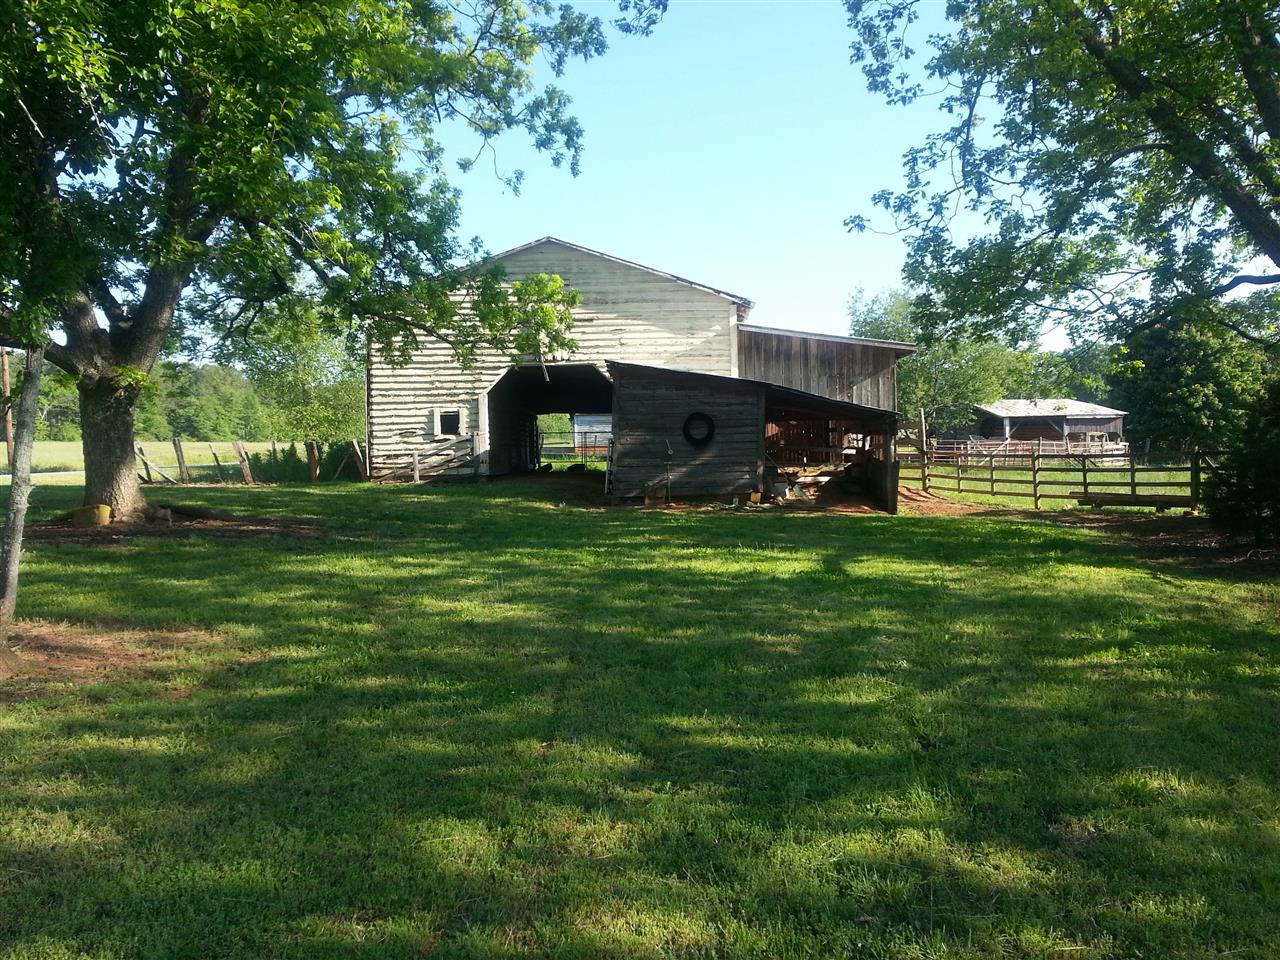 Barns in Bostic, NC.